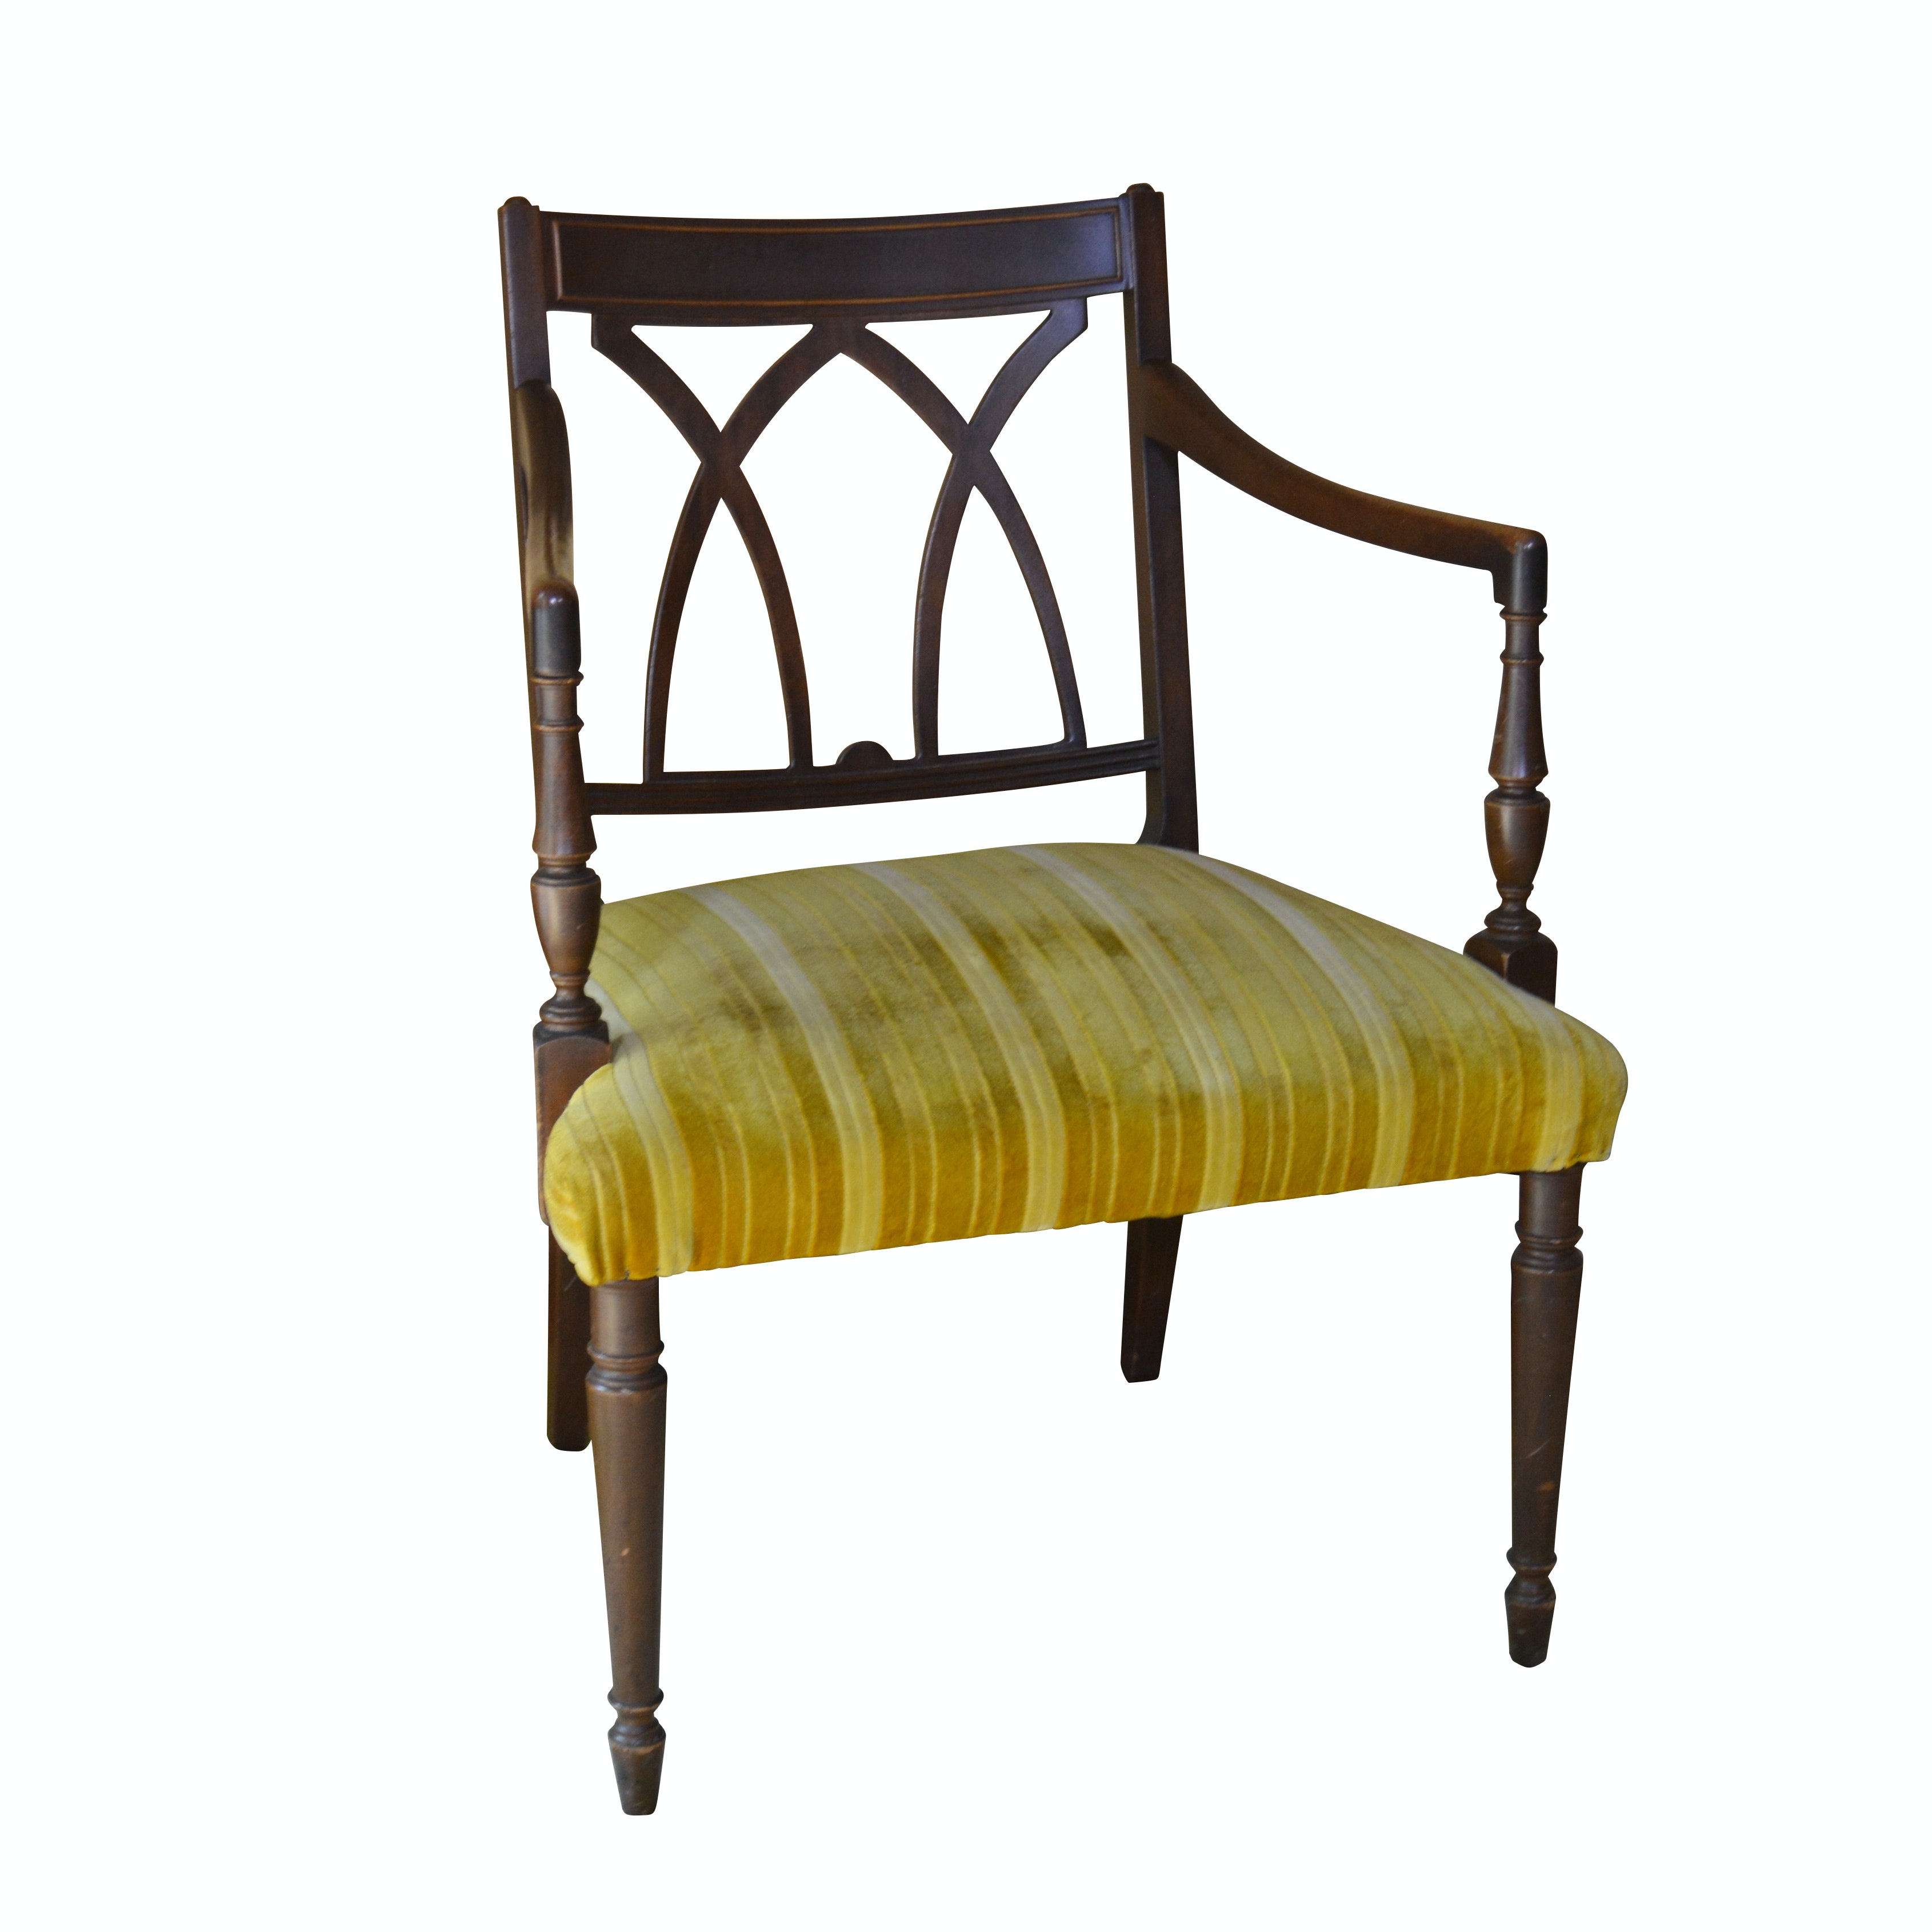 Federal Style Upholstered Mahogany Finish Upholstered Armchair, Mid-20th Century